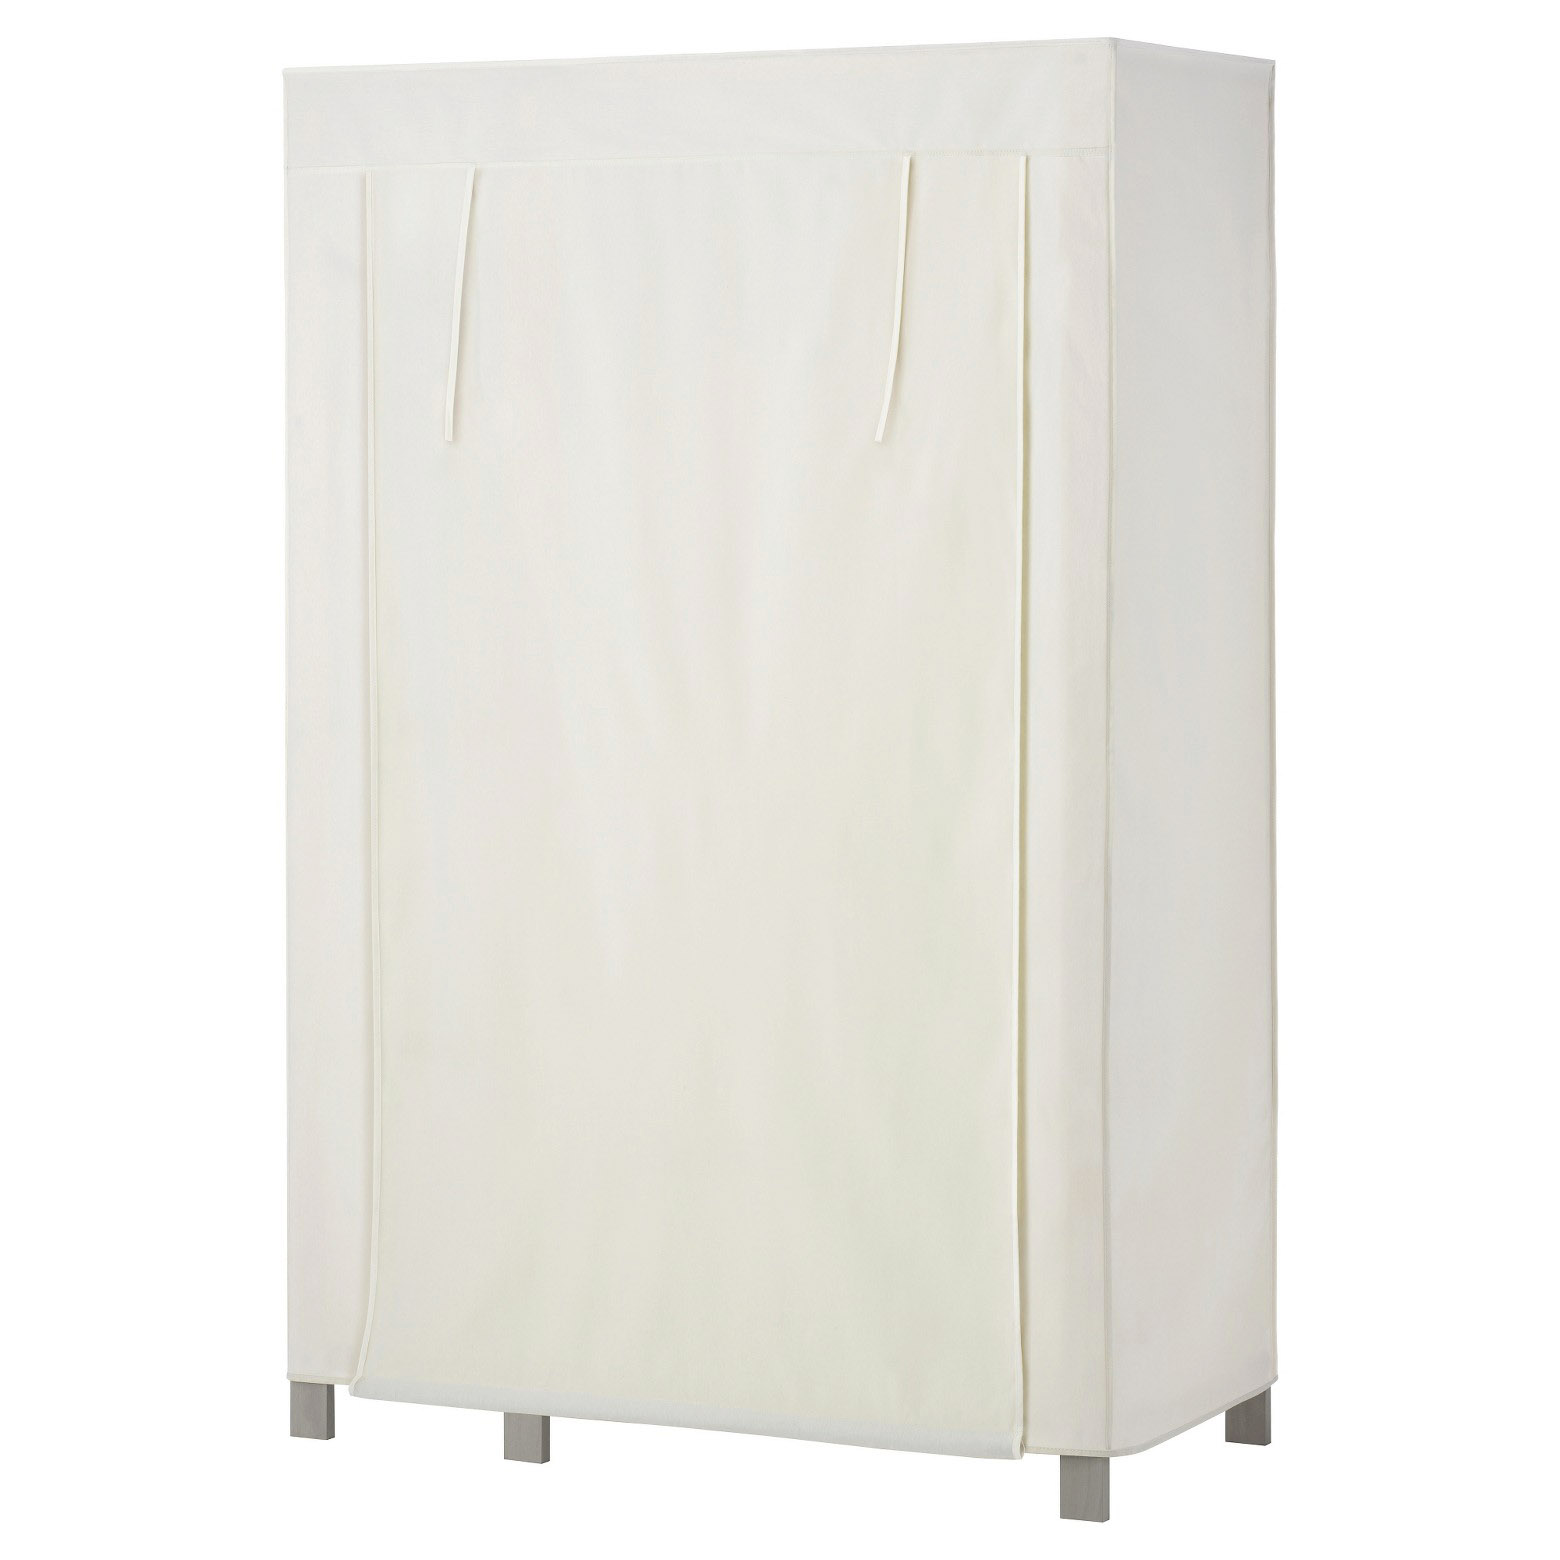 Canvas Garment Rack Cover  - Sacked: Burlap Covers For Metal Pantry Shelving